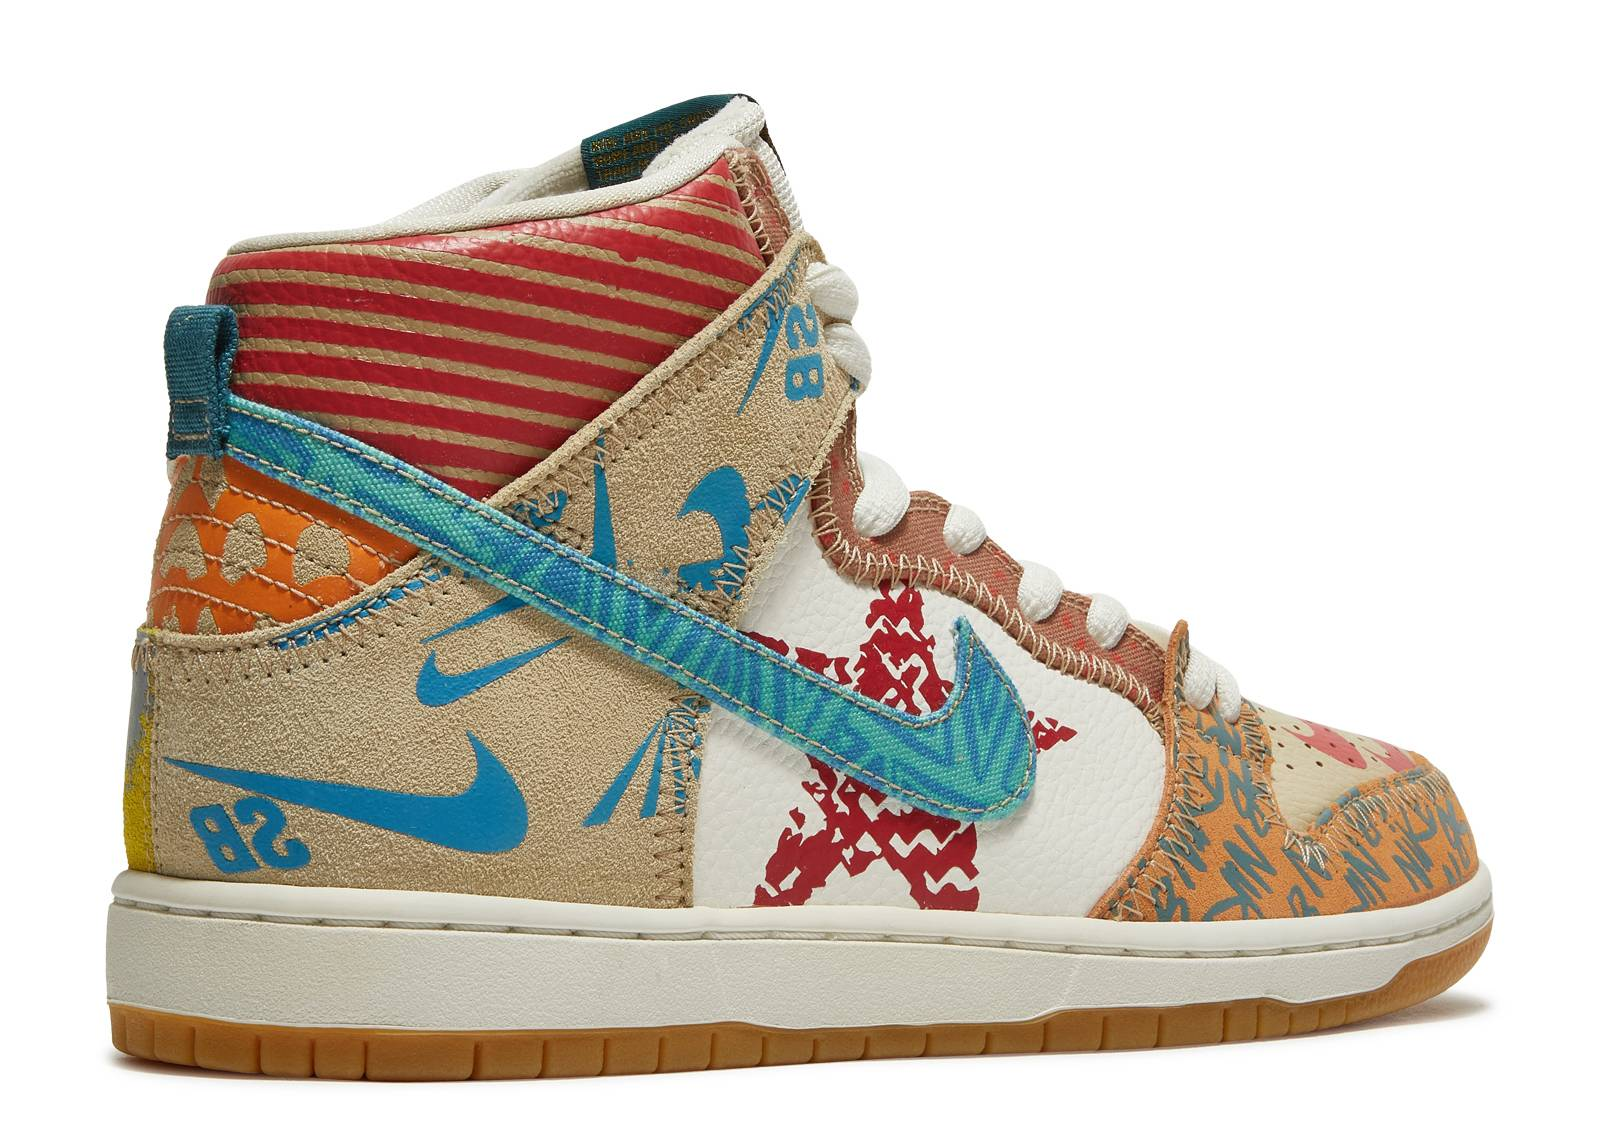 Nike Sb Zoom Dunk High Prem 'What The' - 918321-381 - Size 9 - Us Size GDeIPrYPxV